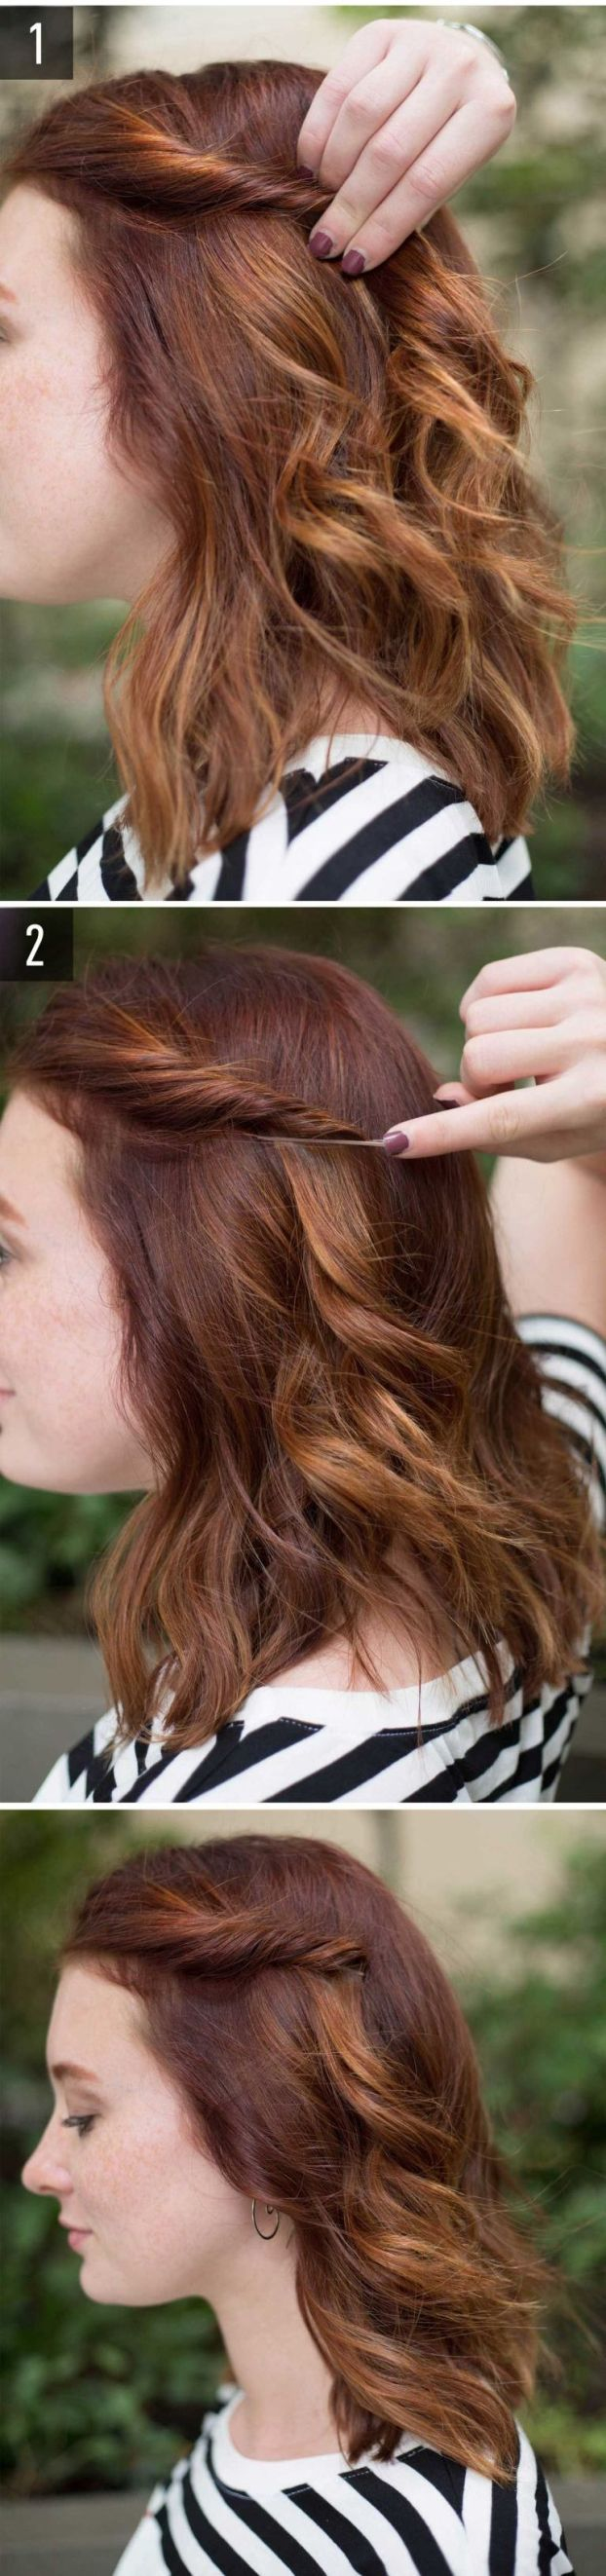 Easy-Ways-to-Style-Hair-6